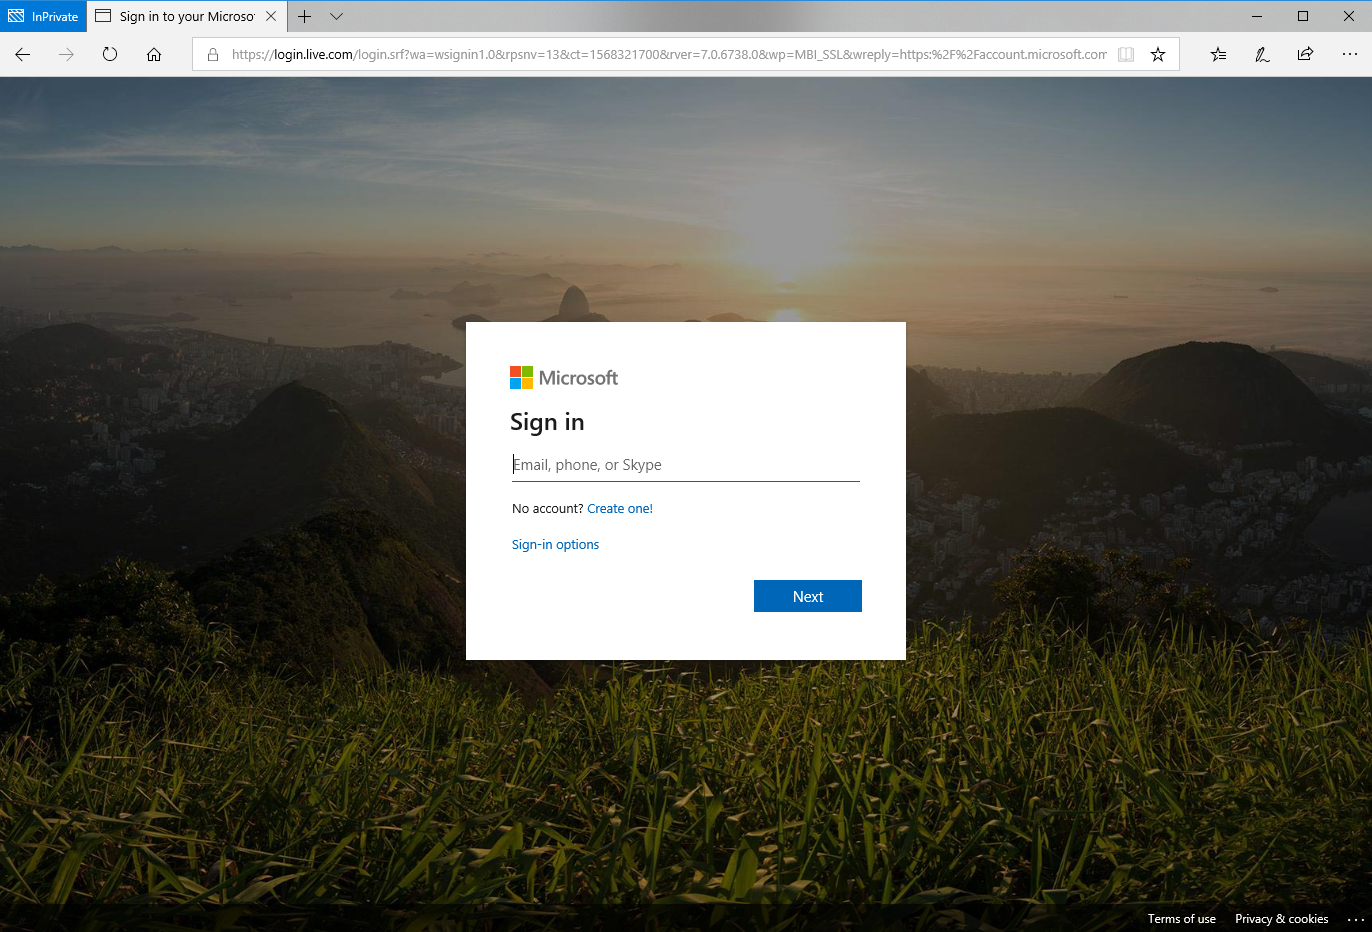 Original Office 365 Login Page